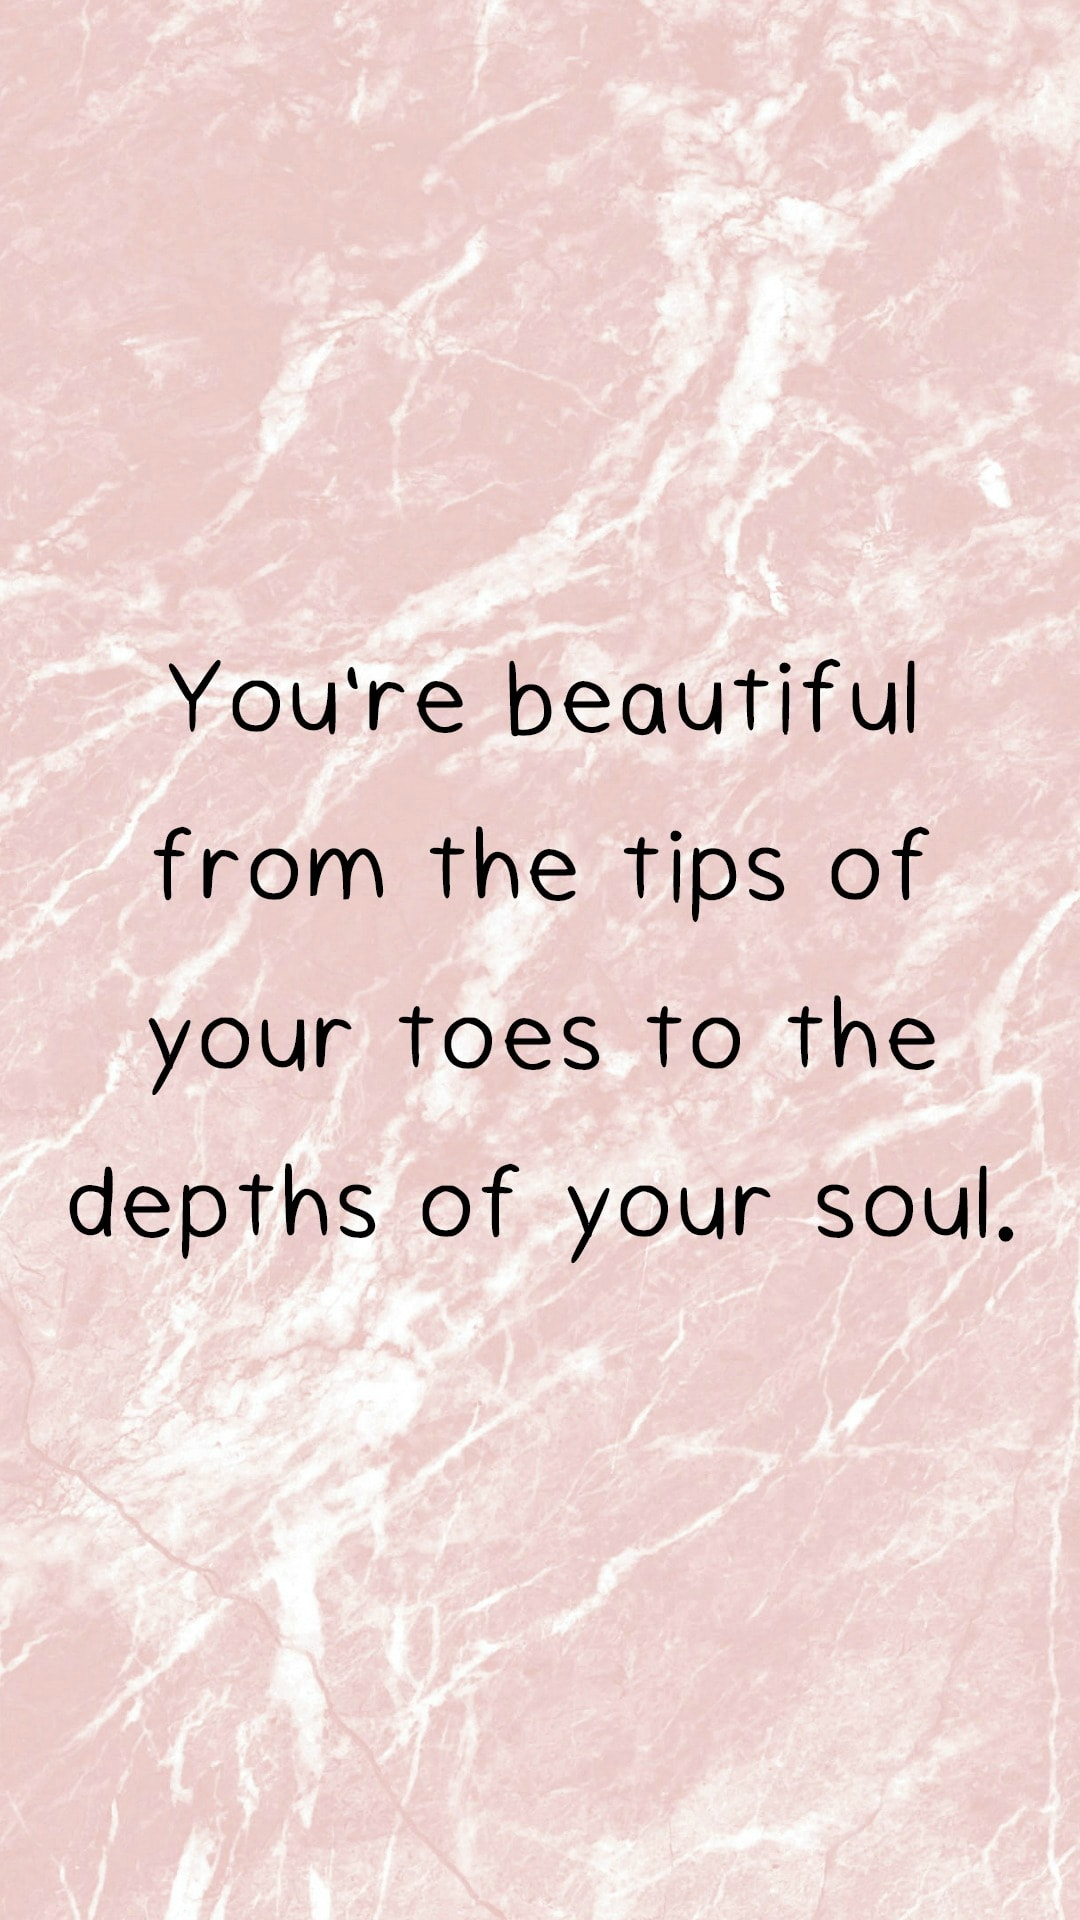 You're beautiful from the tips of your toes to the depths of your soul.